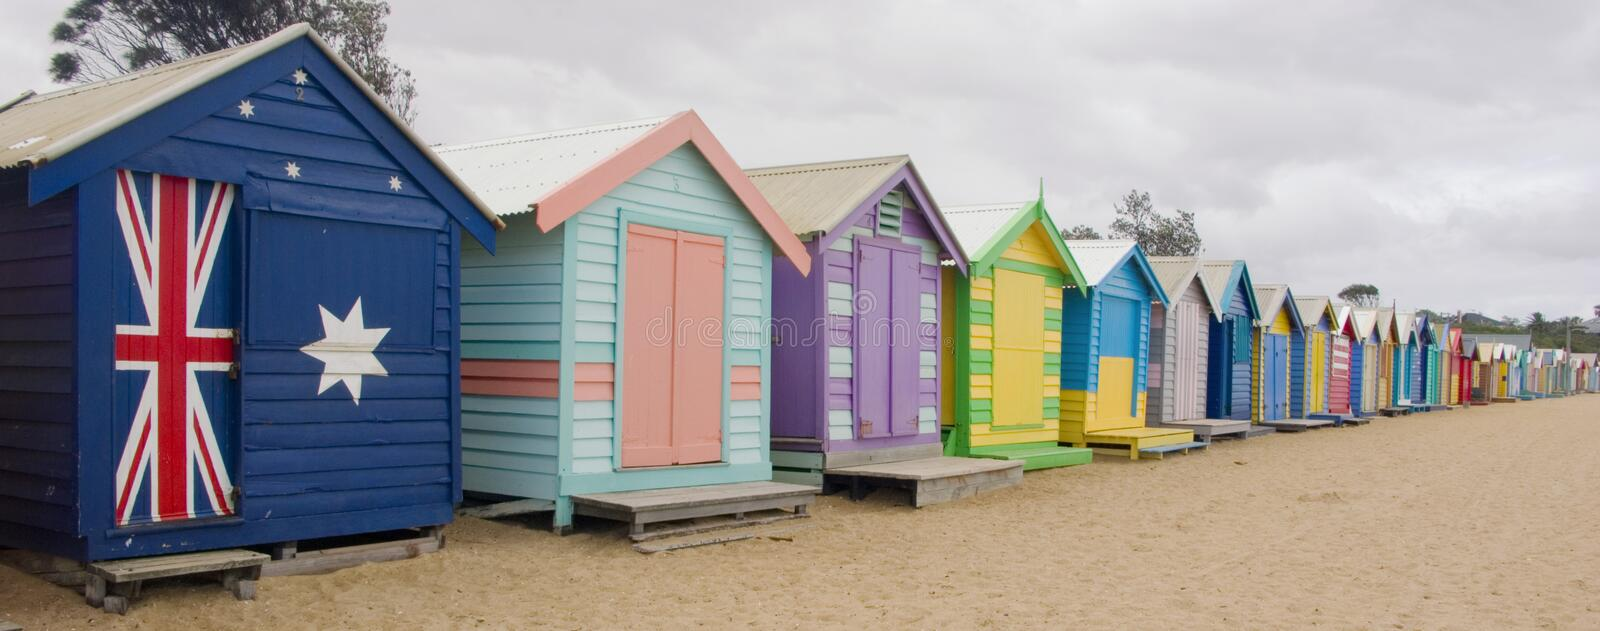 Bathing Boxes royalty free stock photo